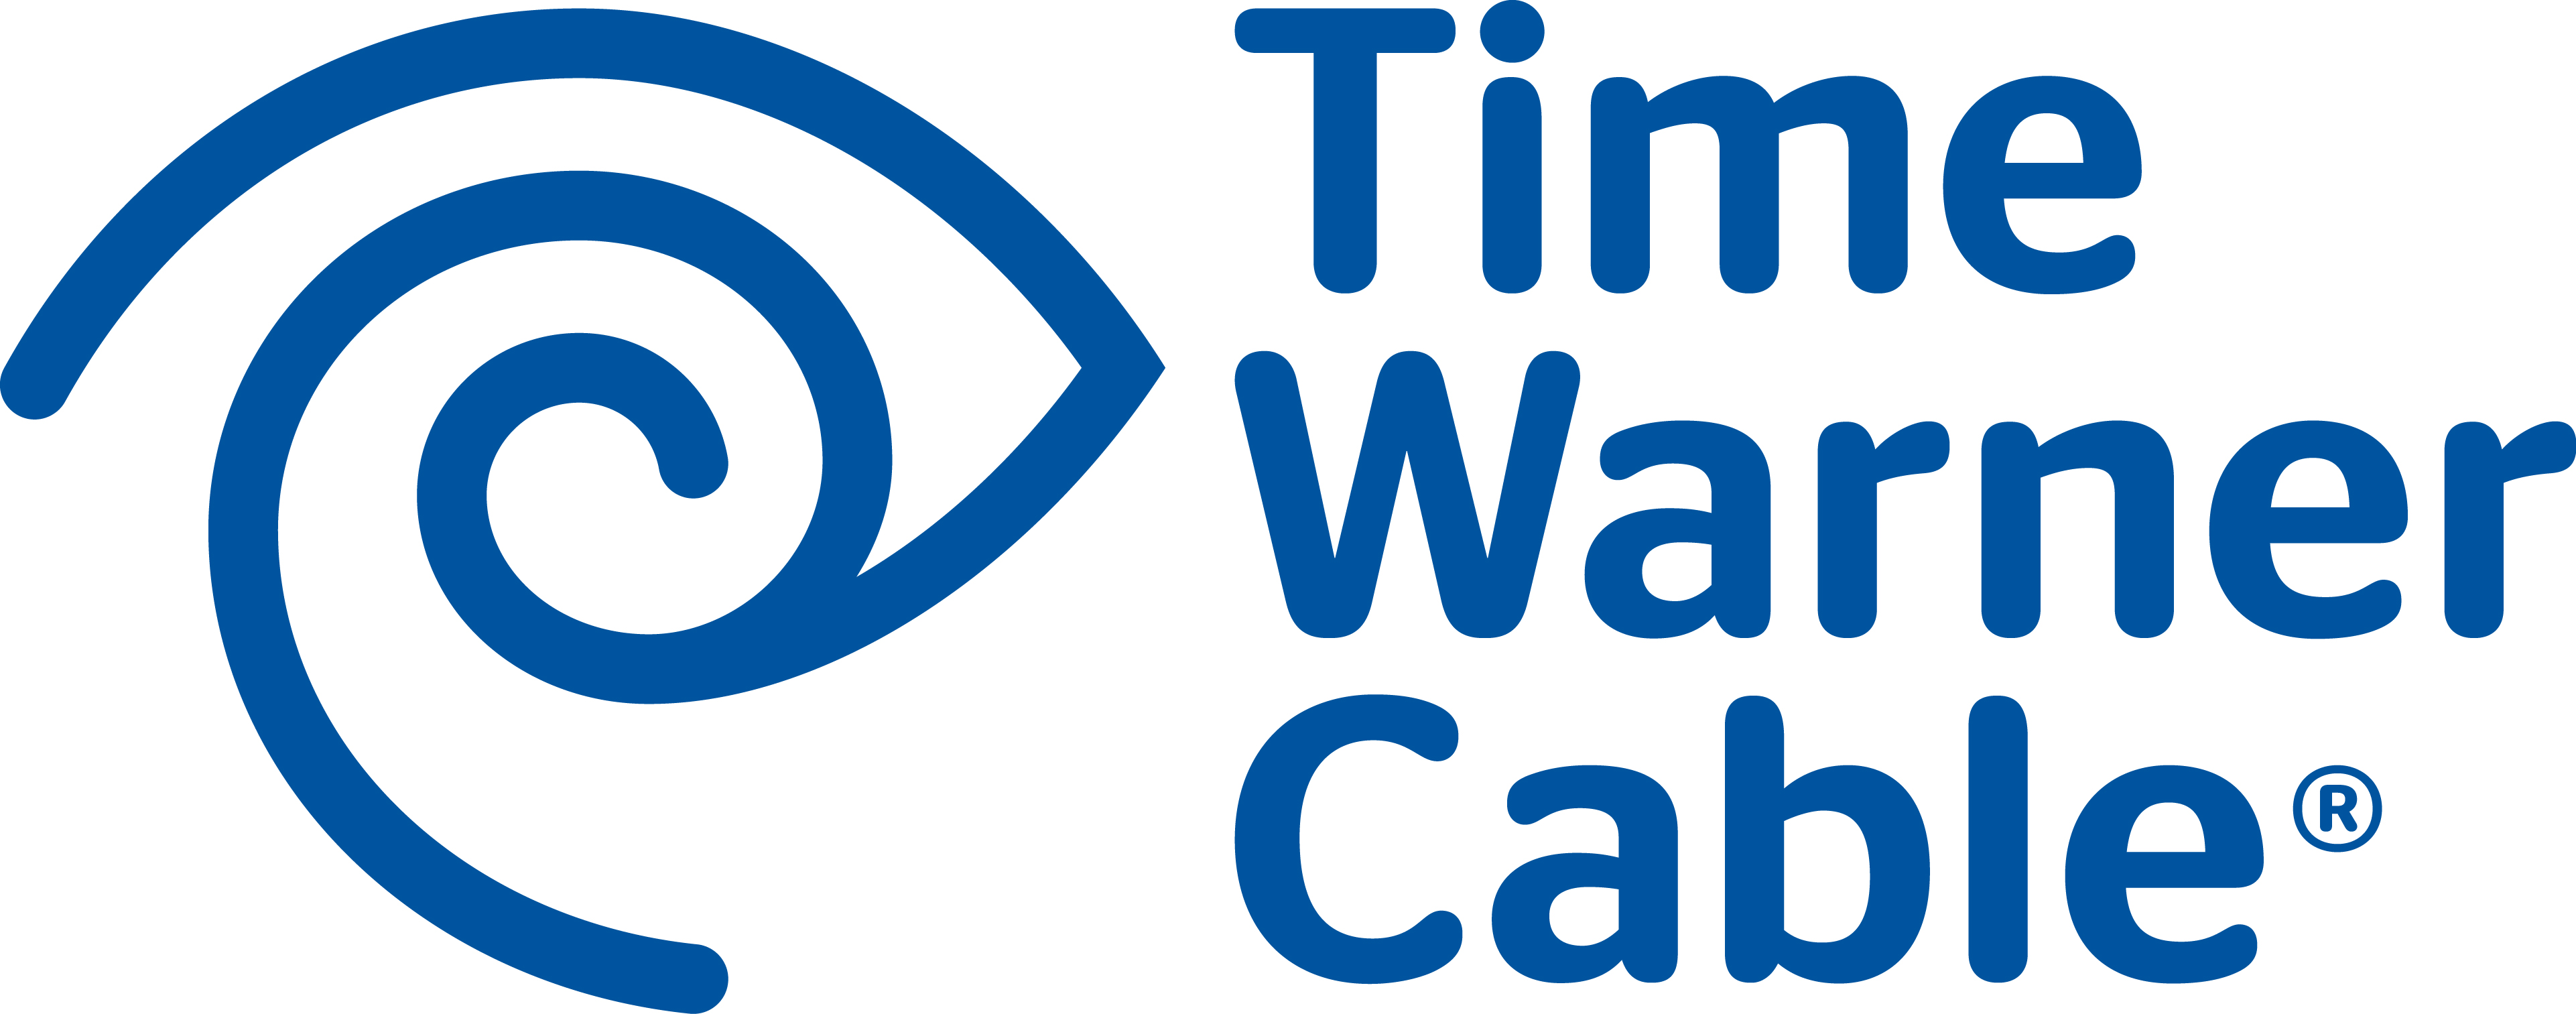 how to stop time warner cable service